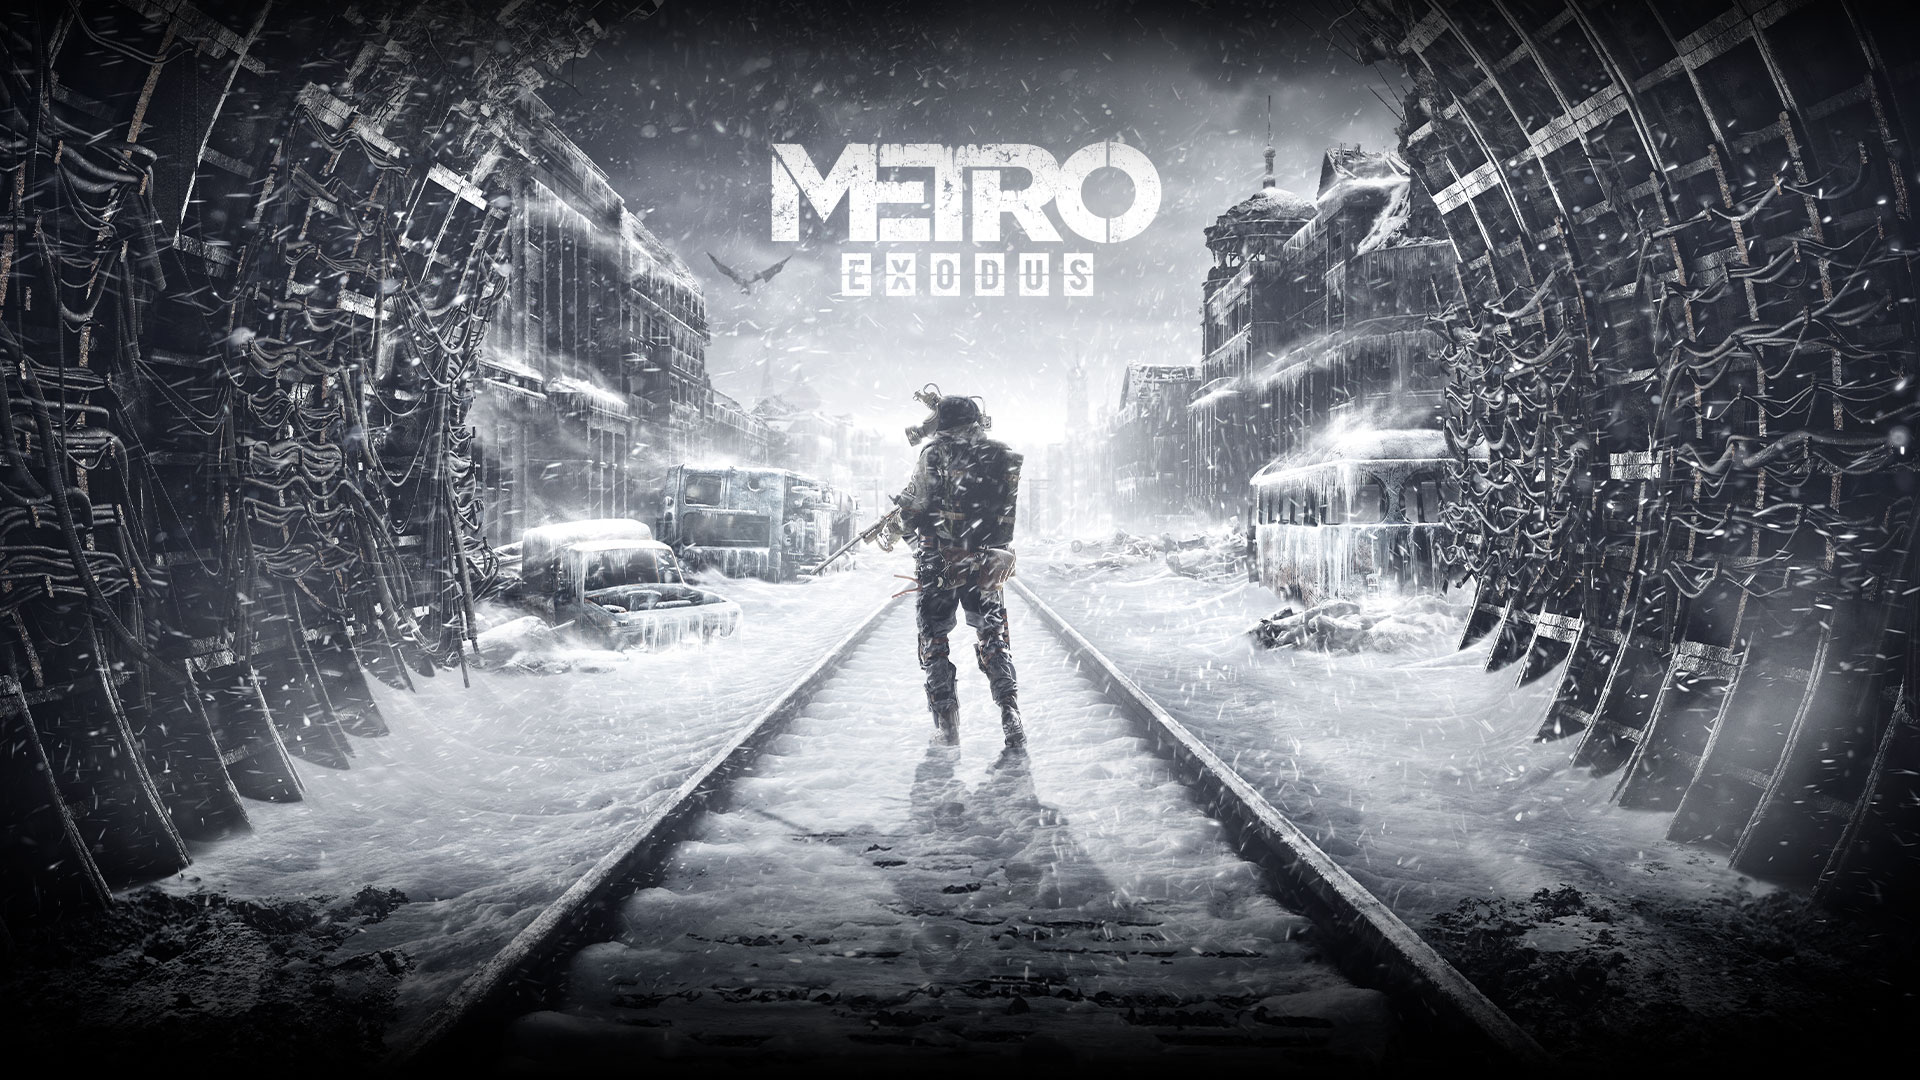 Metro Exodus, A man holding a gun stands on snow covered train tracks in a tunnel.